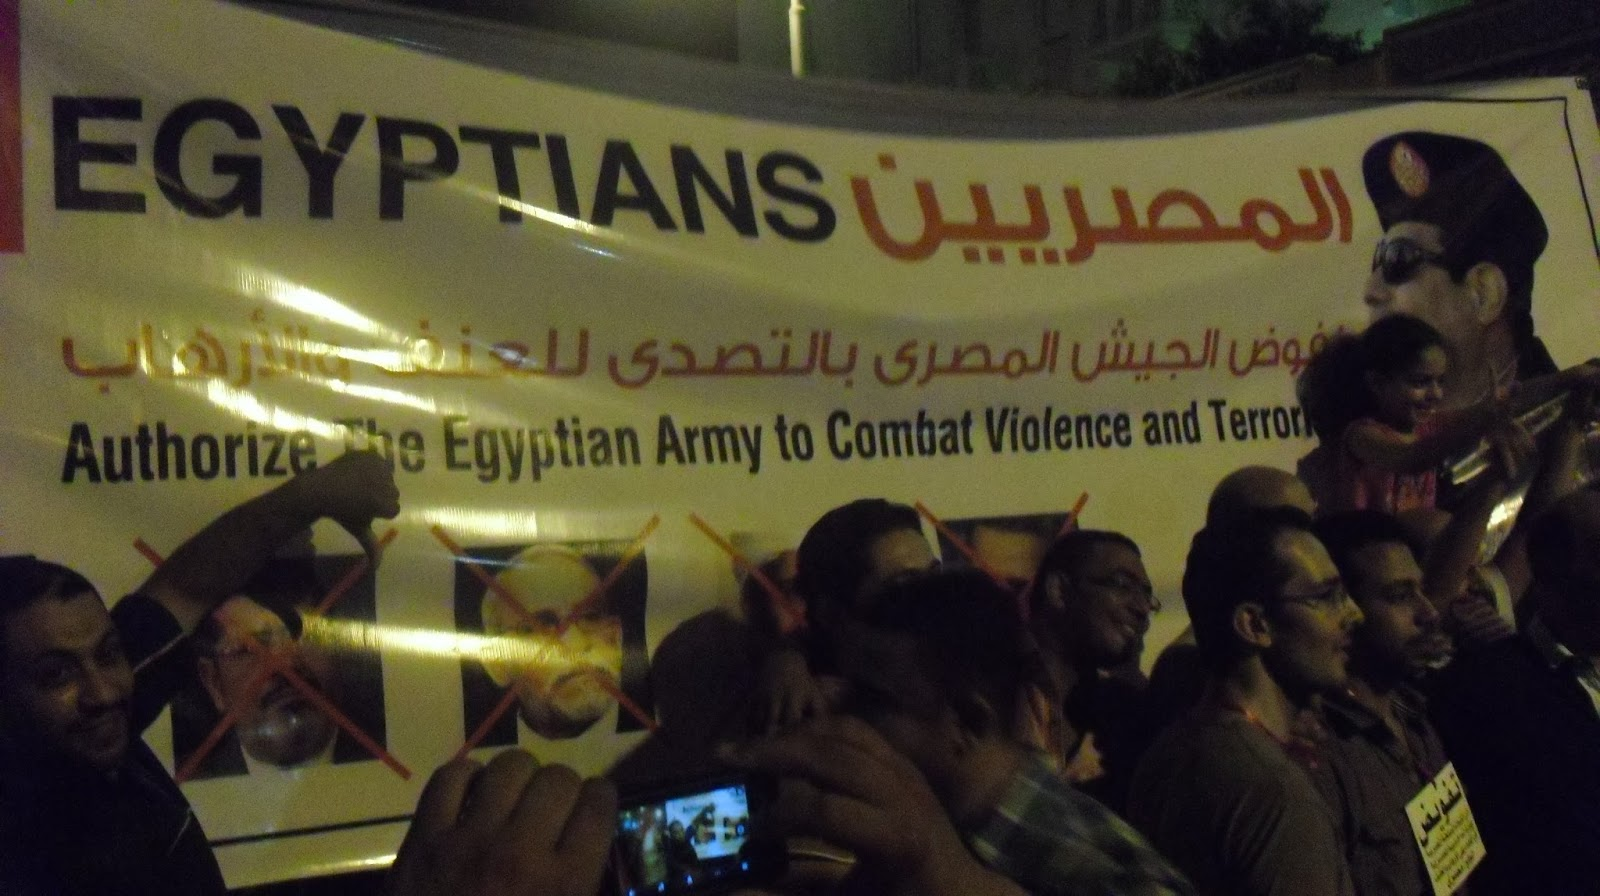 eg july 26 Egyptians authorize army